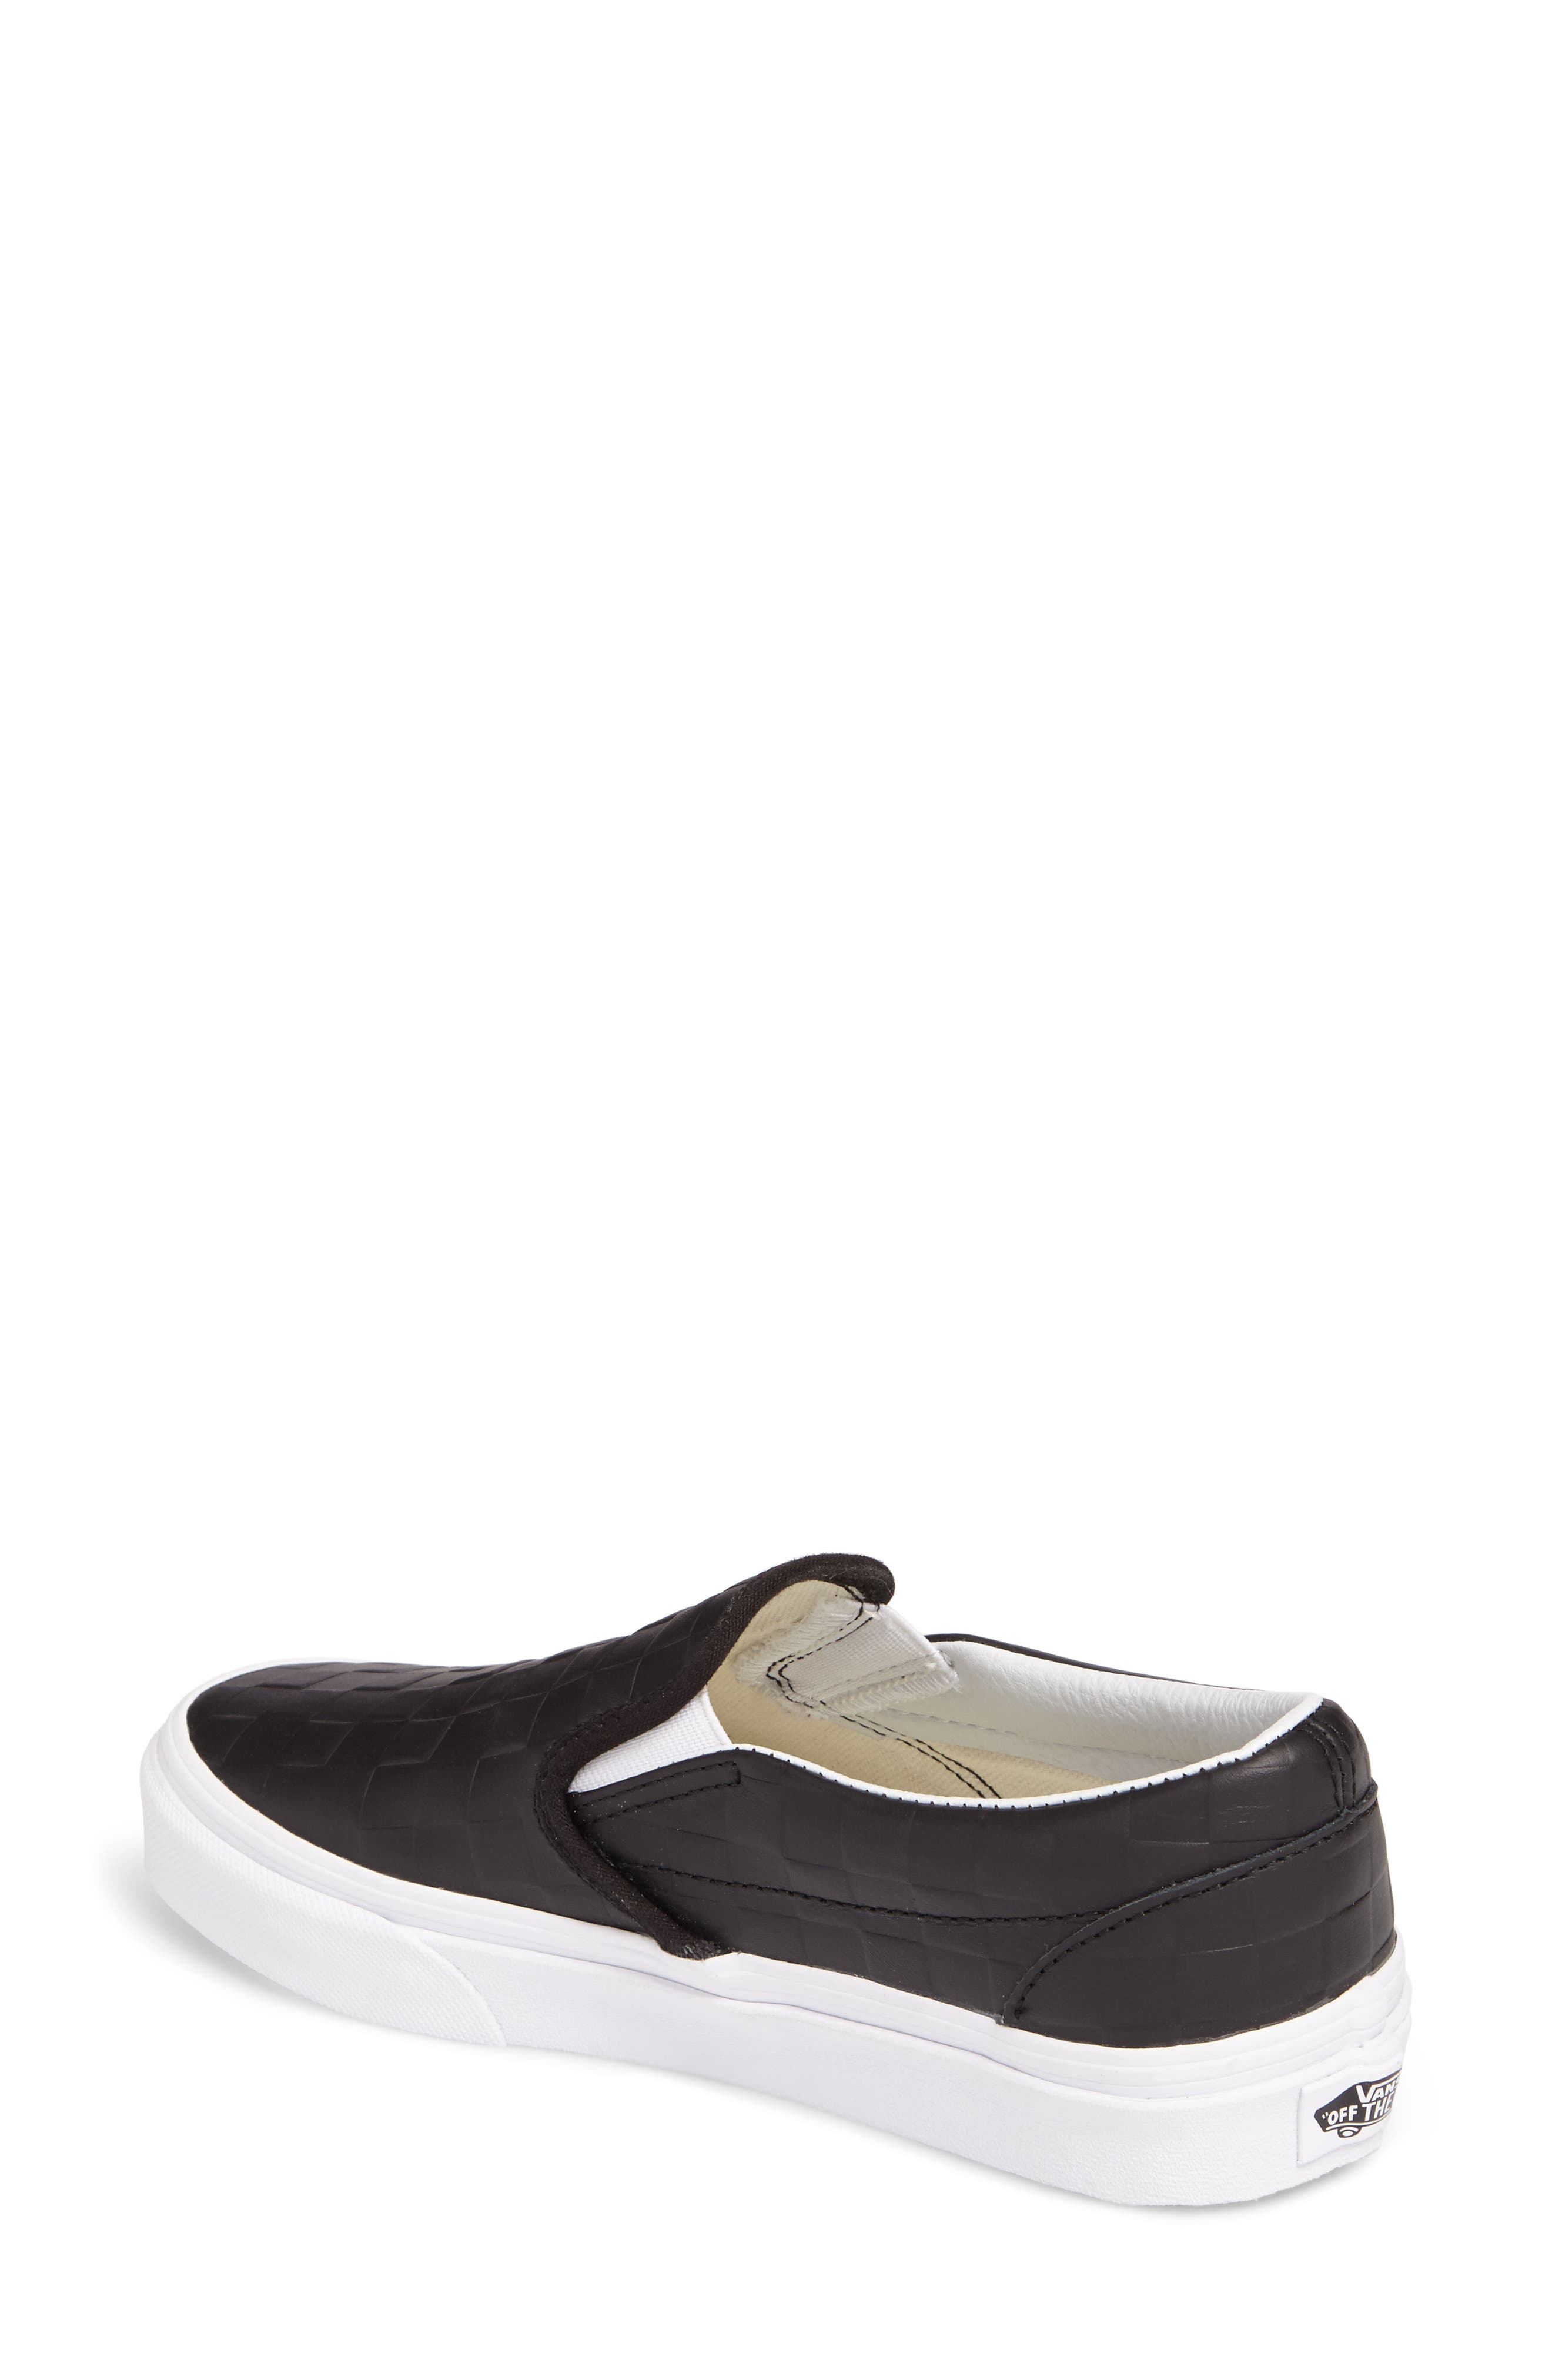 Classic Slip-On Sneaker,                             Alternate thumbnail 2, color,                             Checkerboard/ Black